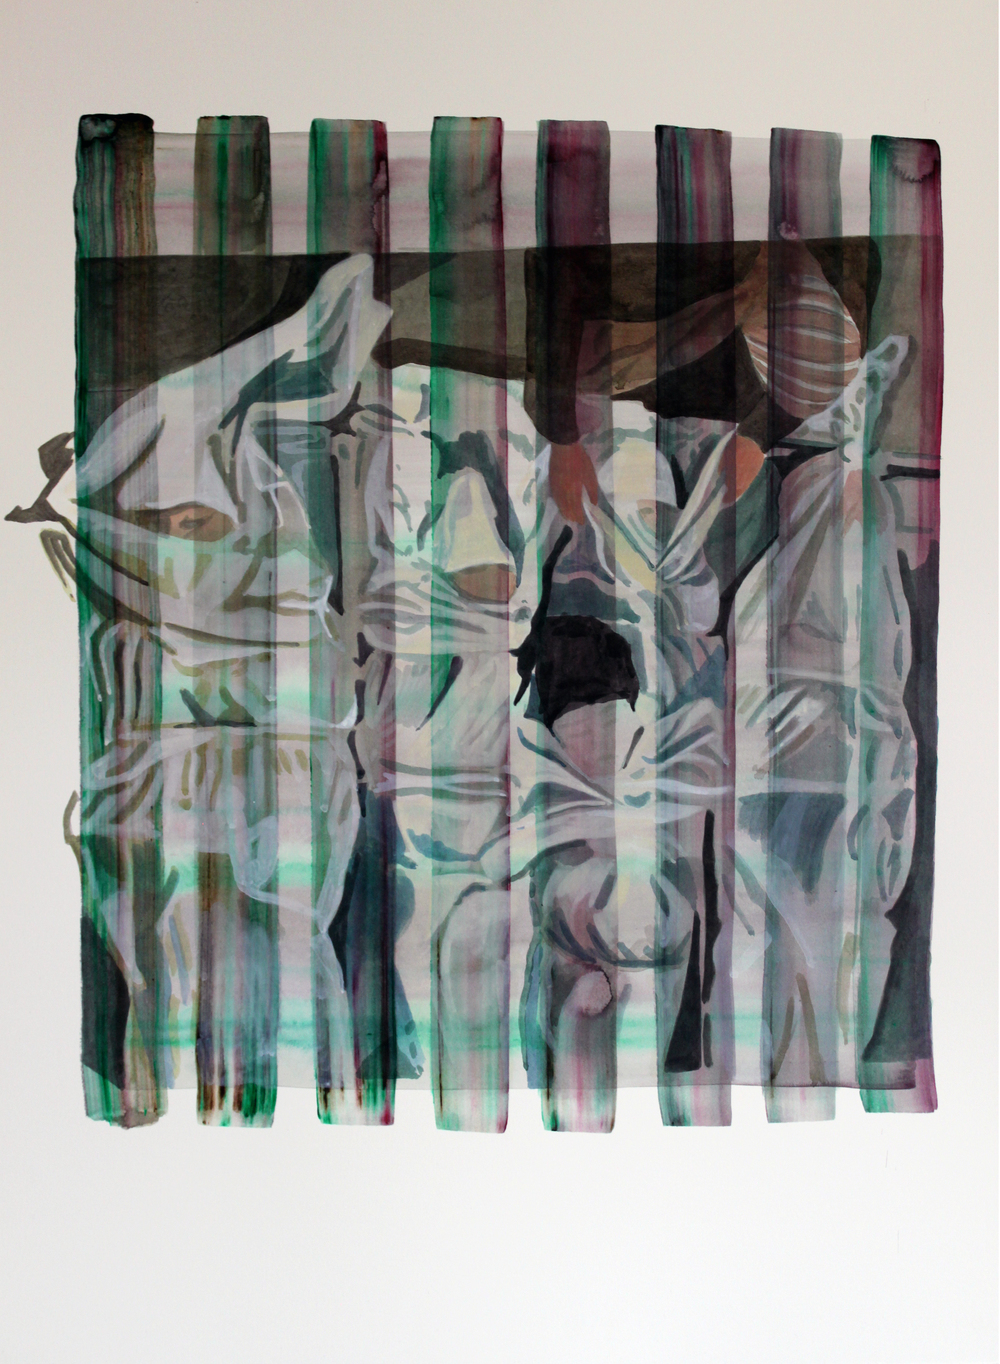 WRAPPED UP, Acrylic on paper, 57 x78cm, 2012